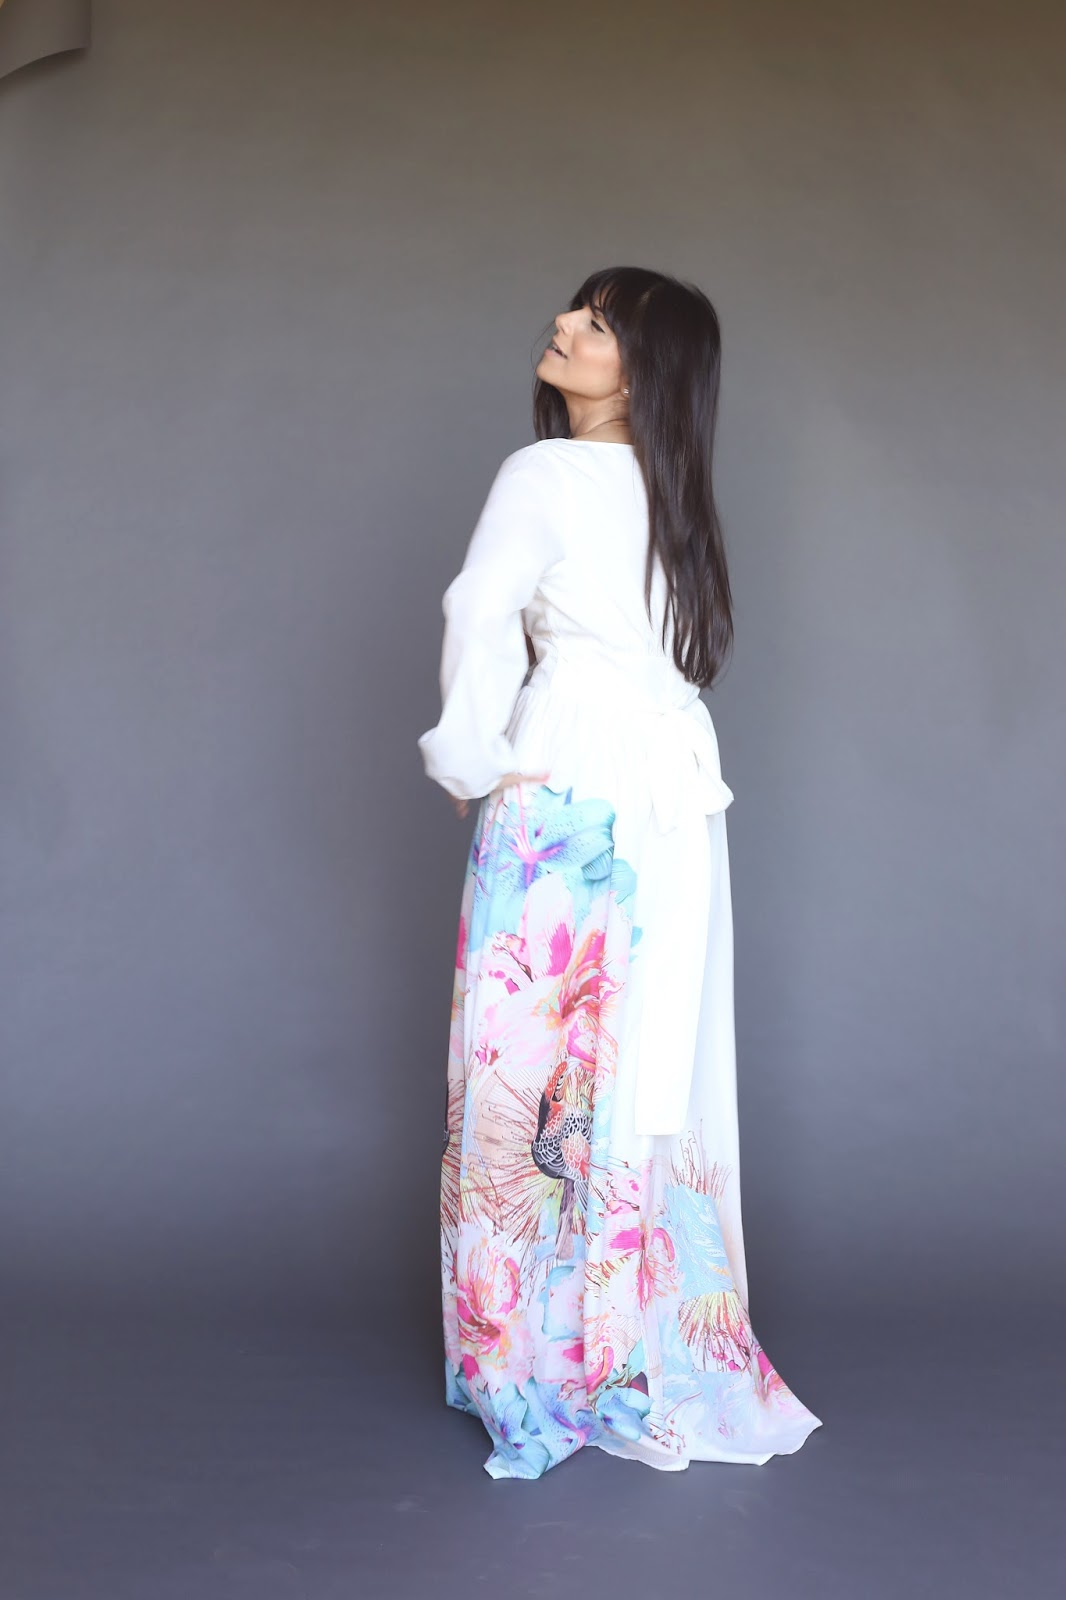 white dress with side colorful bird print long sleeve modest maxi dress hijab tznius fashion style Mode-sty